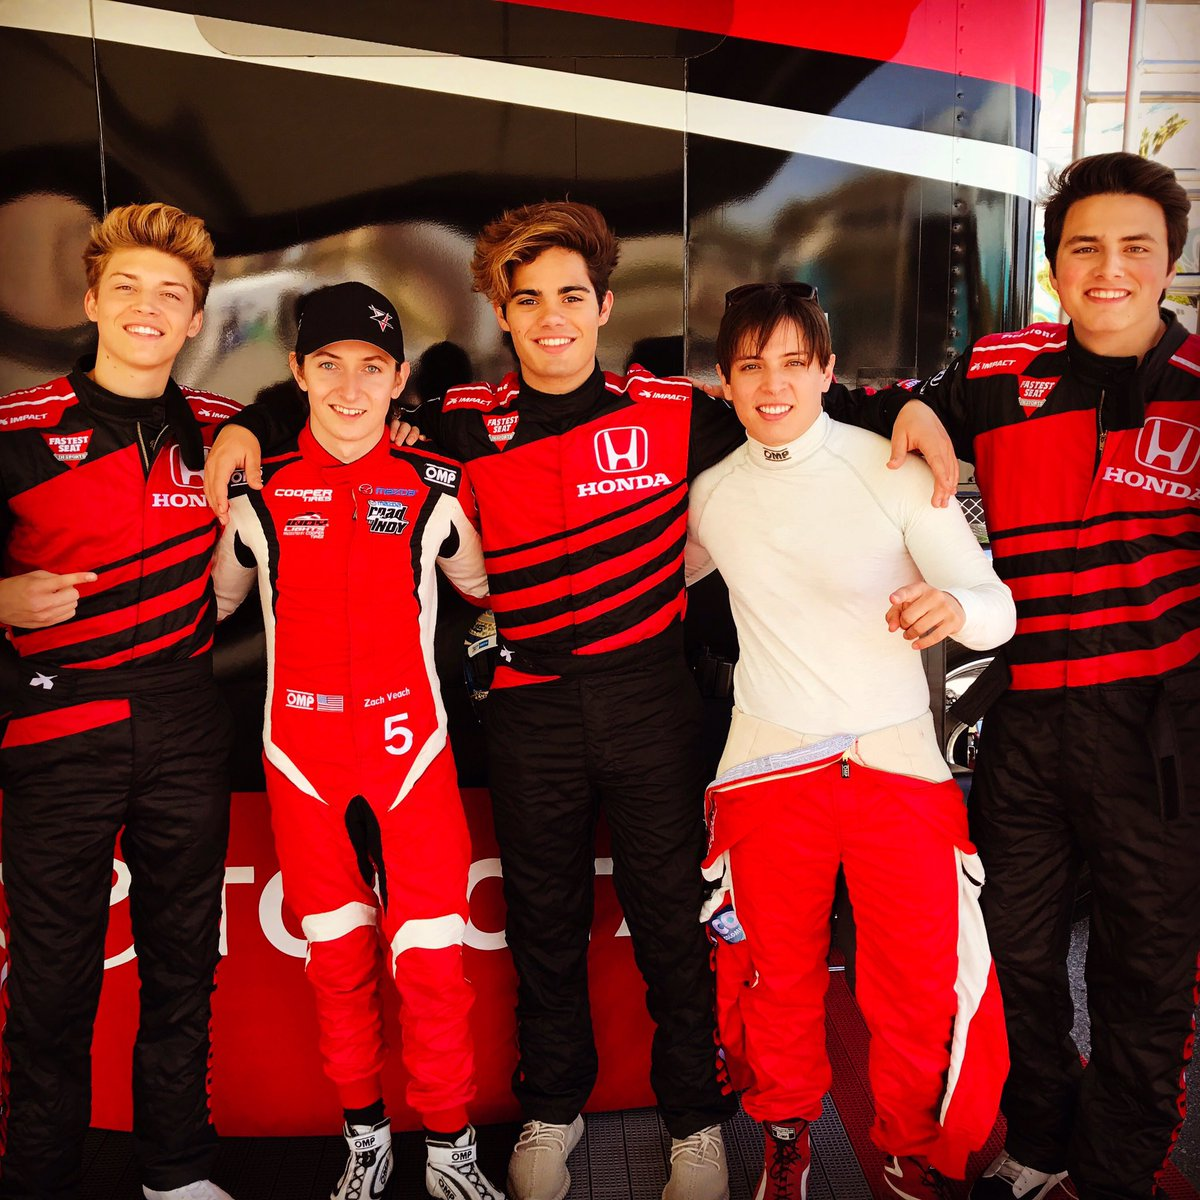 Fun meeting @RealRickyGarcia @LiamAttridge and @EmeryTKelly today at @ToyotaGPLB. @OfficialFIYM https://t.co/3xtOoEtnYR